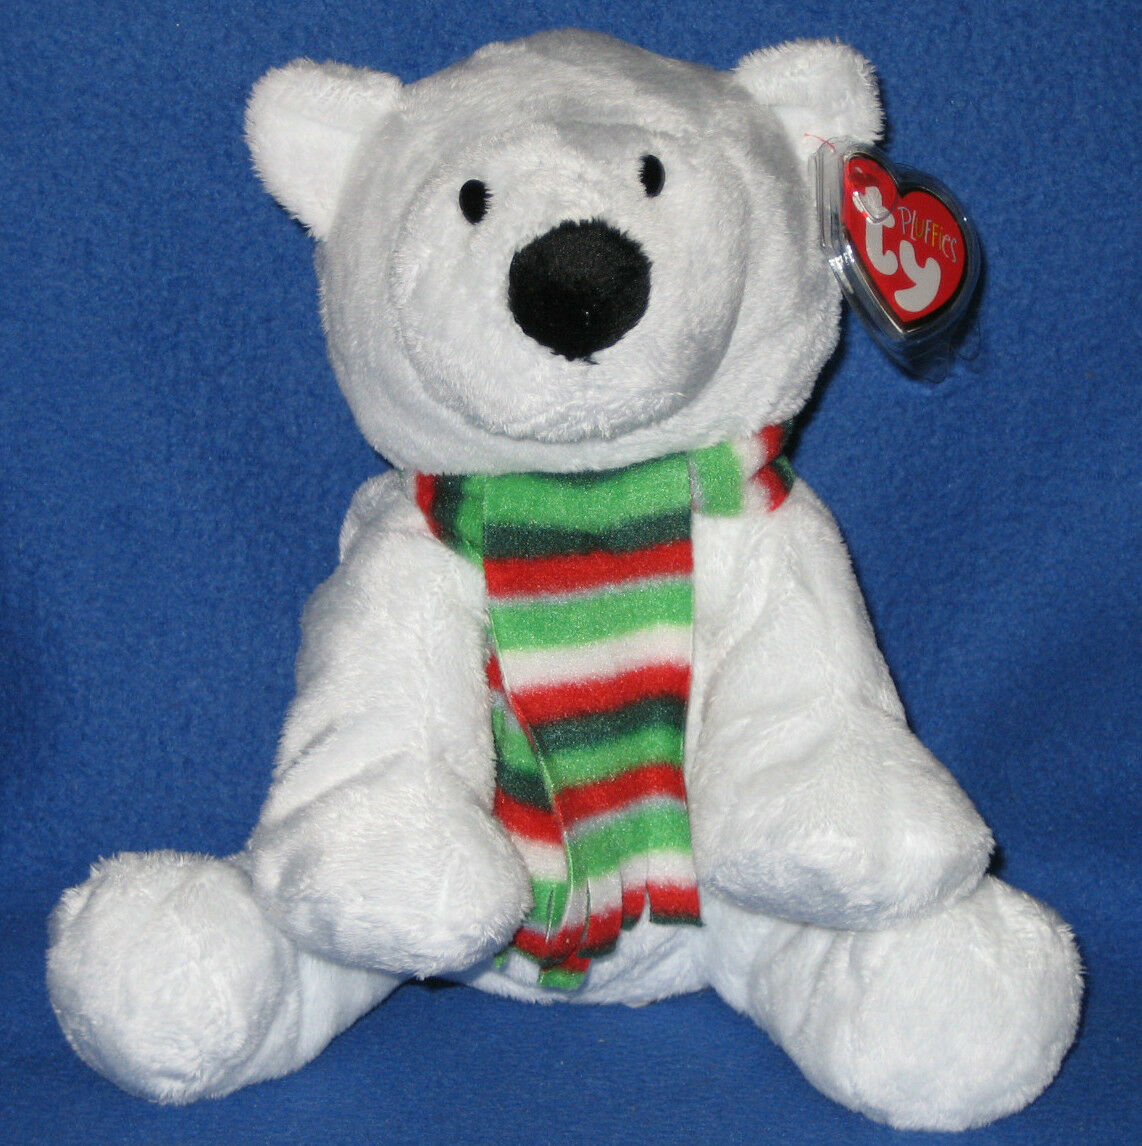 ALPS THE POLAR BEAR - TY PLUFFIES - MINT with MINT TAGS